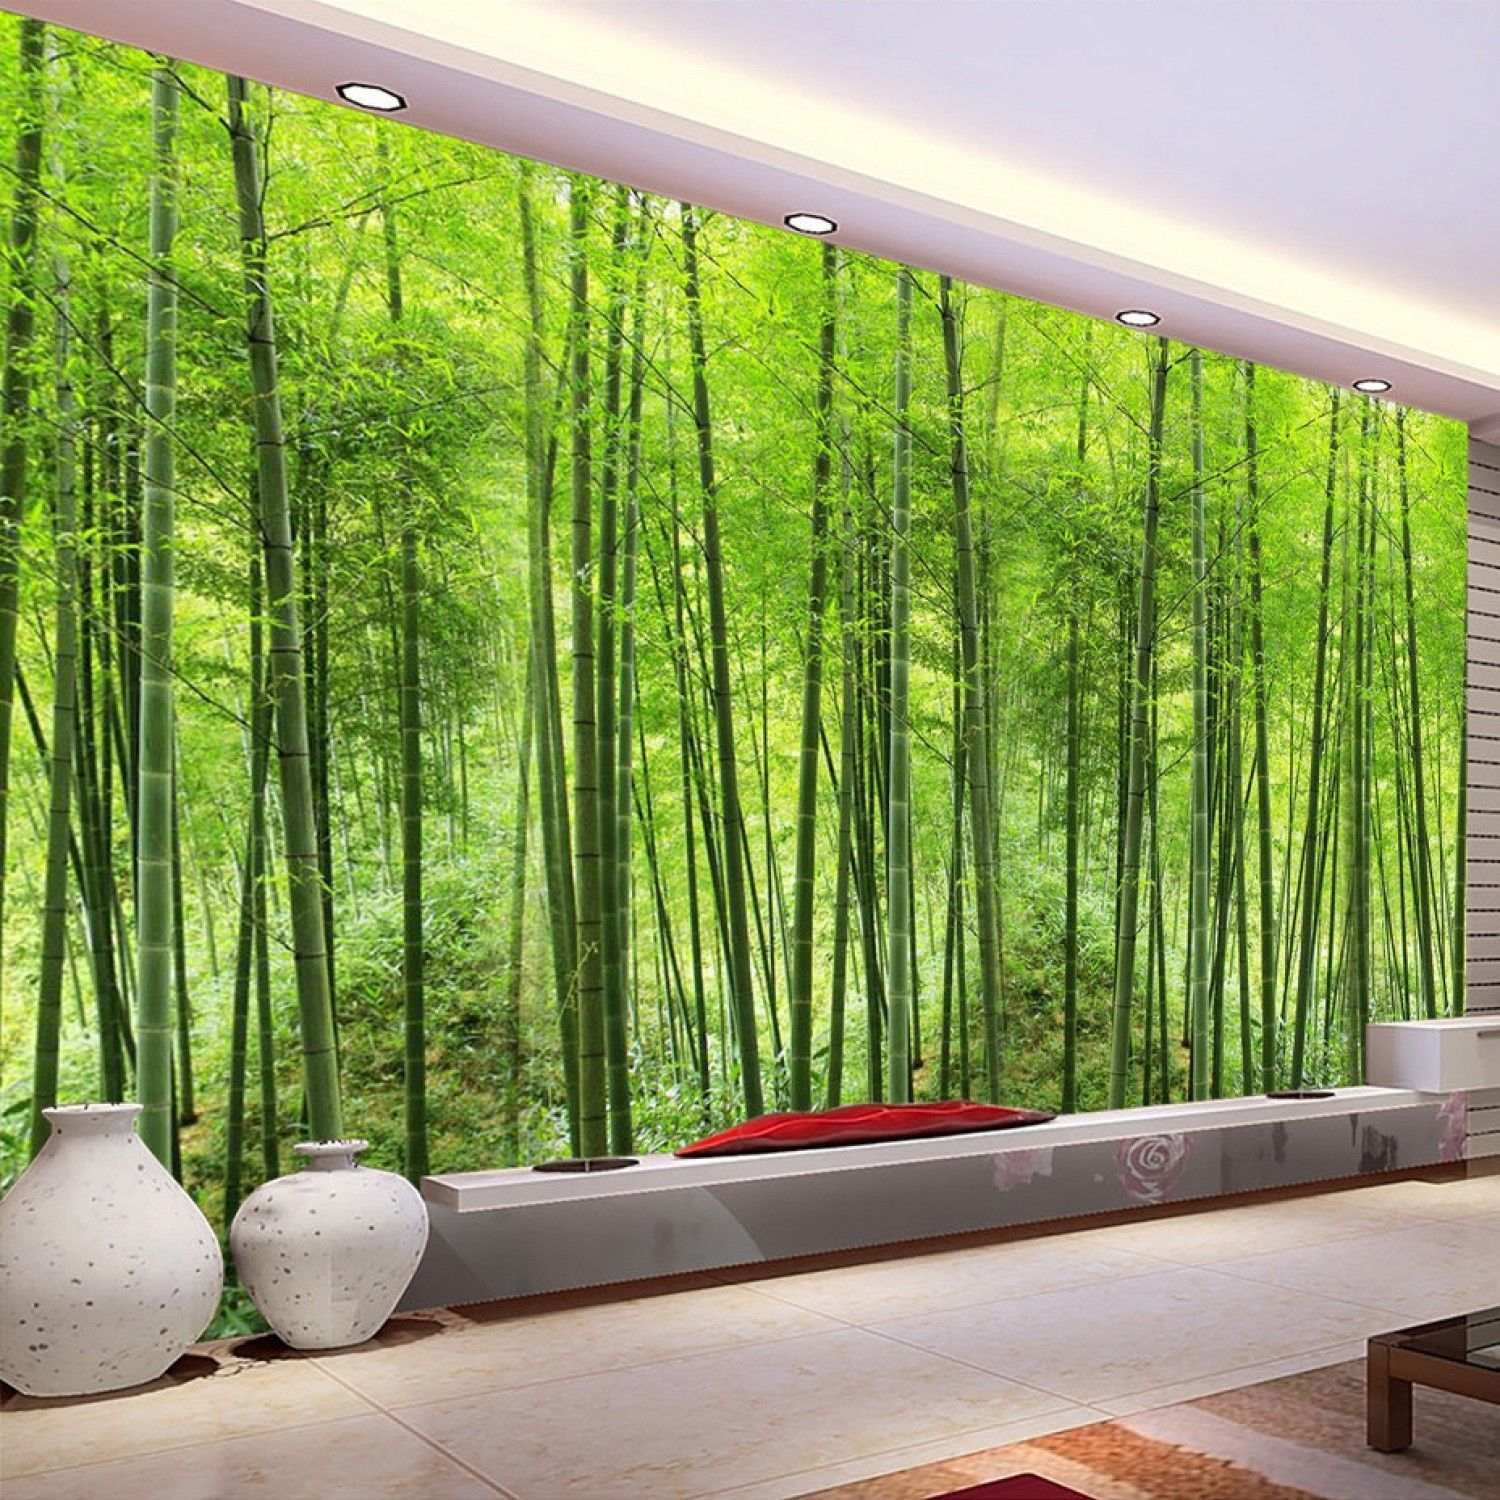 Custom Photo Wallpaper Bamboo Forest Art Wall Painting Living Room Tv Background Ebay Wall Painting Living Room Living Room Murals 3d Wallpaper For Walls 3d forest mural wallpaper